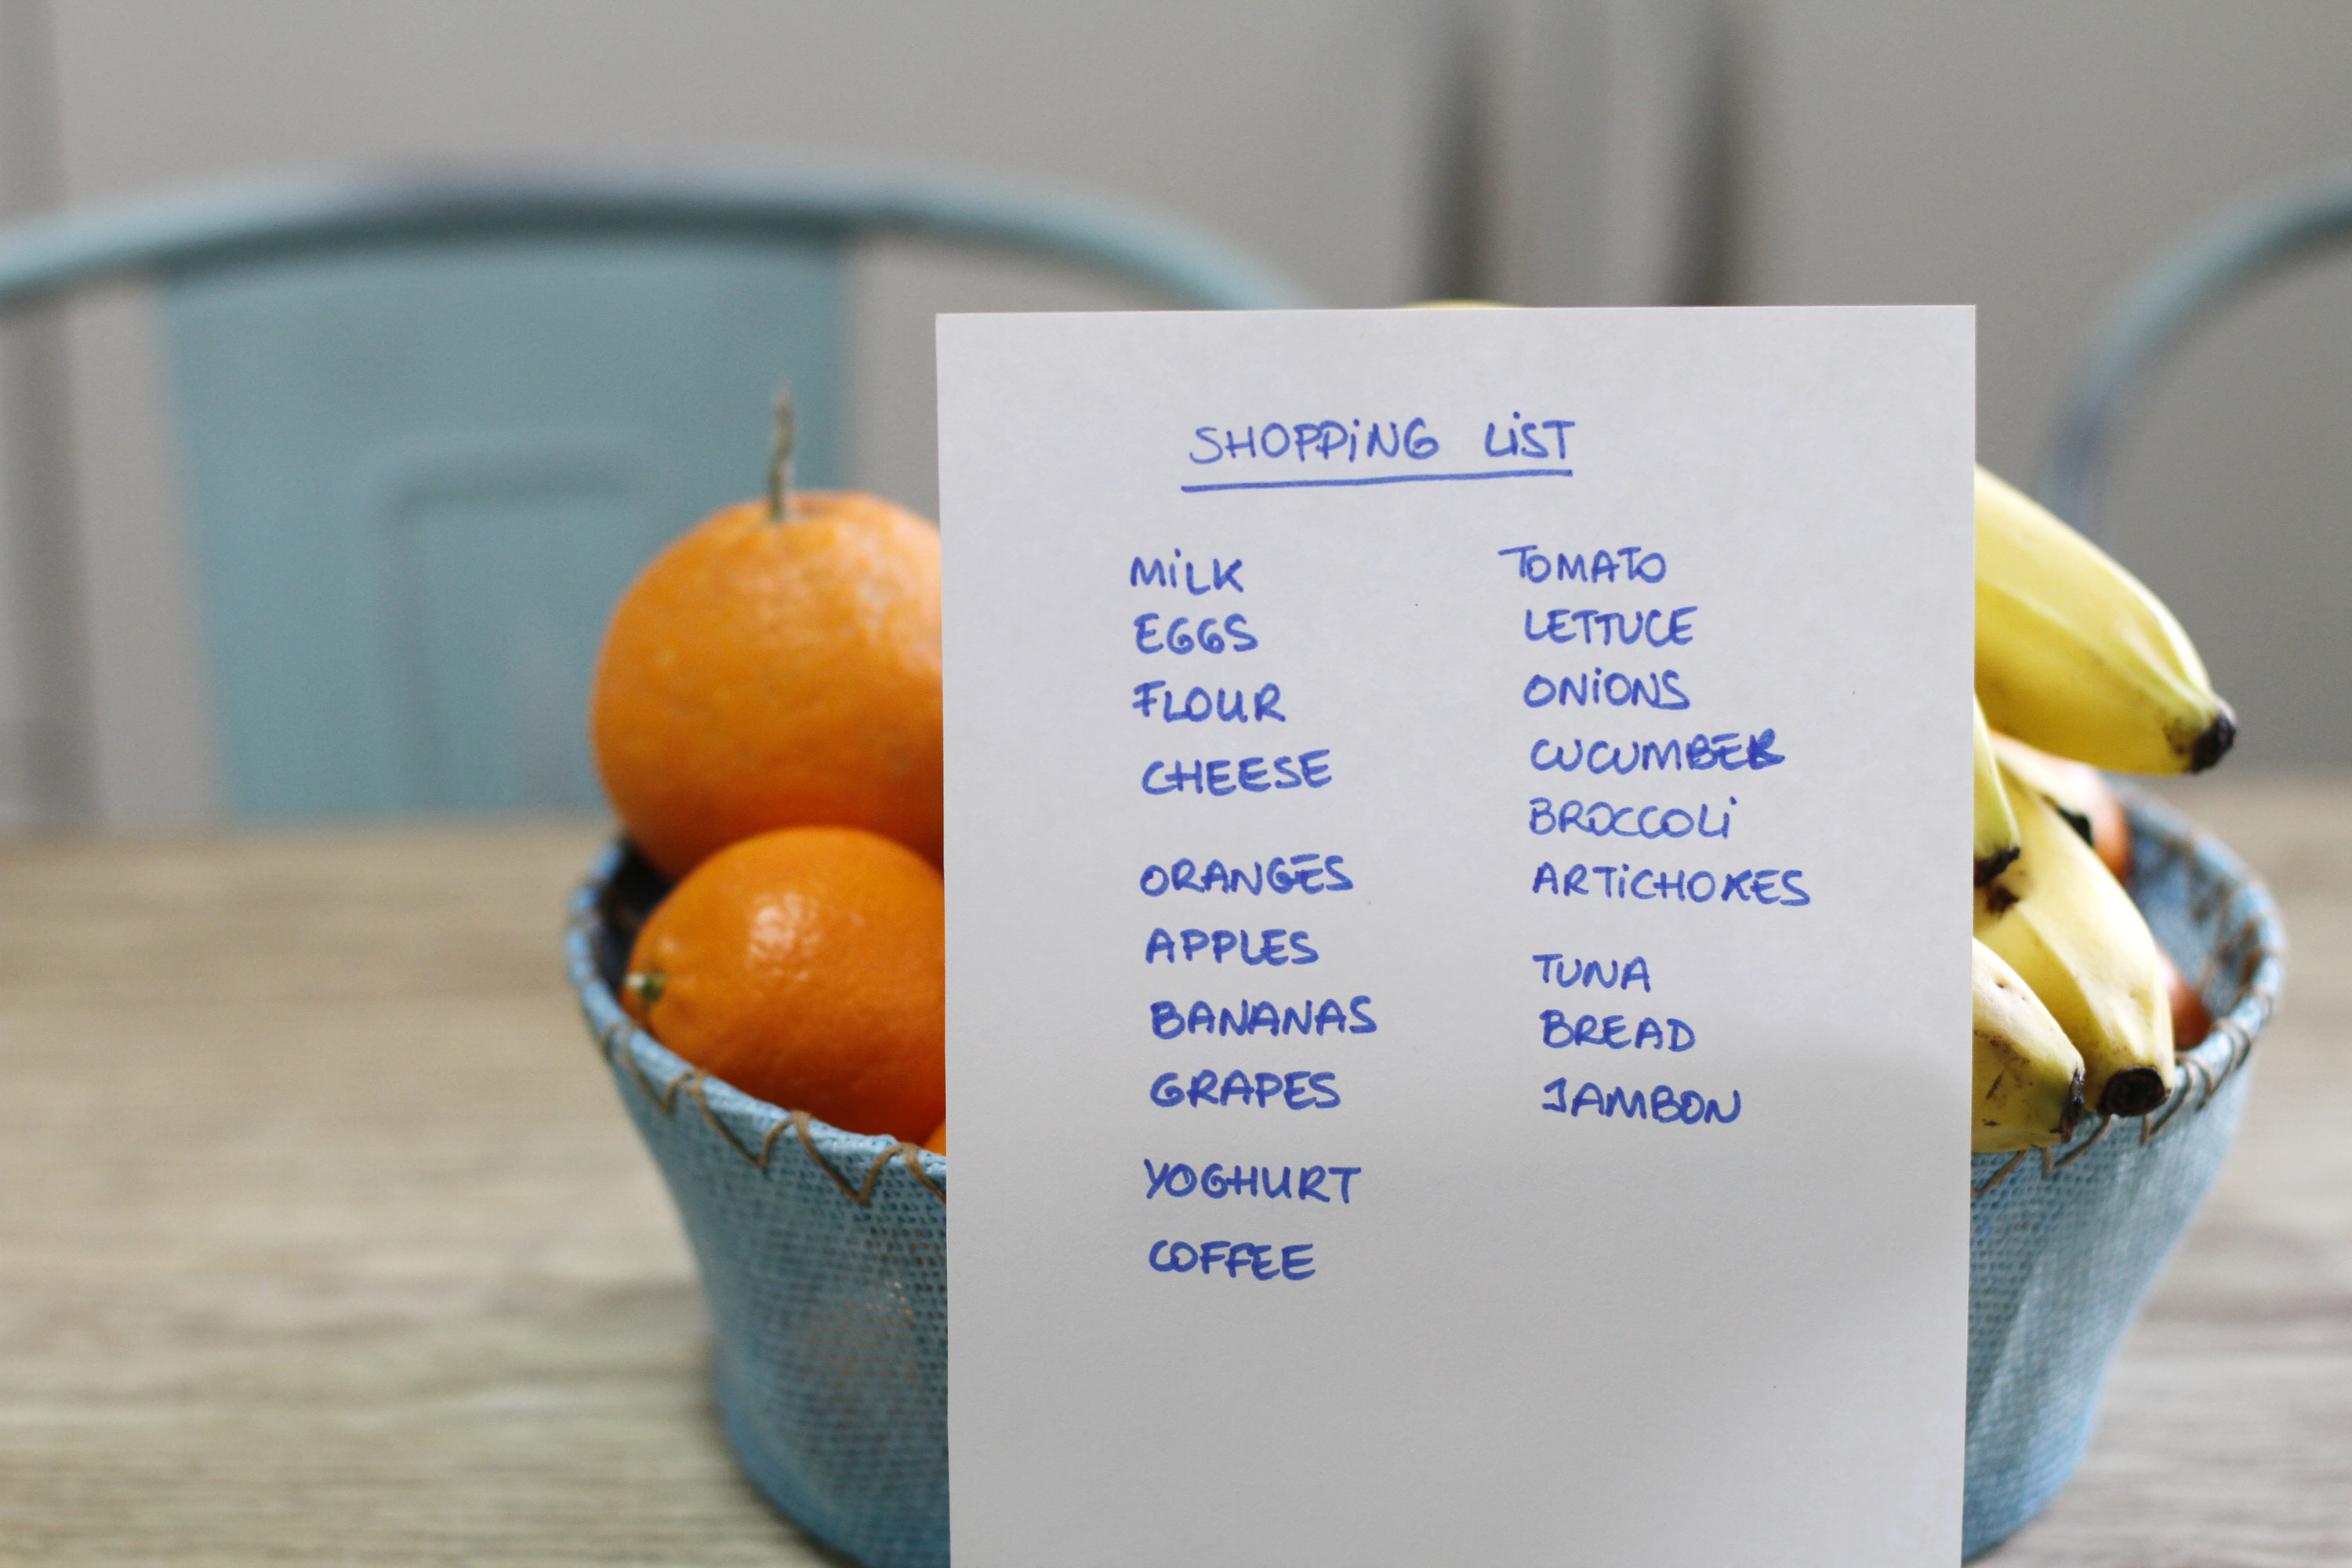 Grocery shopping list written out on a piece of paper in front of a bowl of oranges and bananas